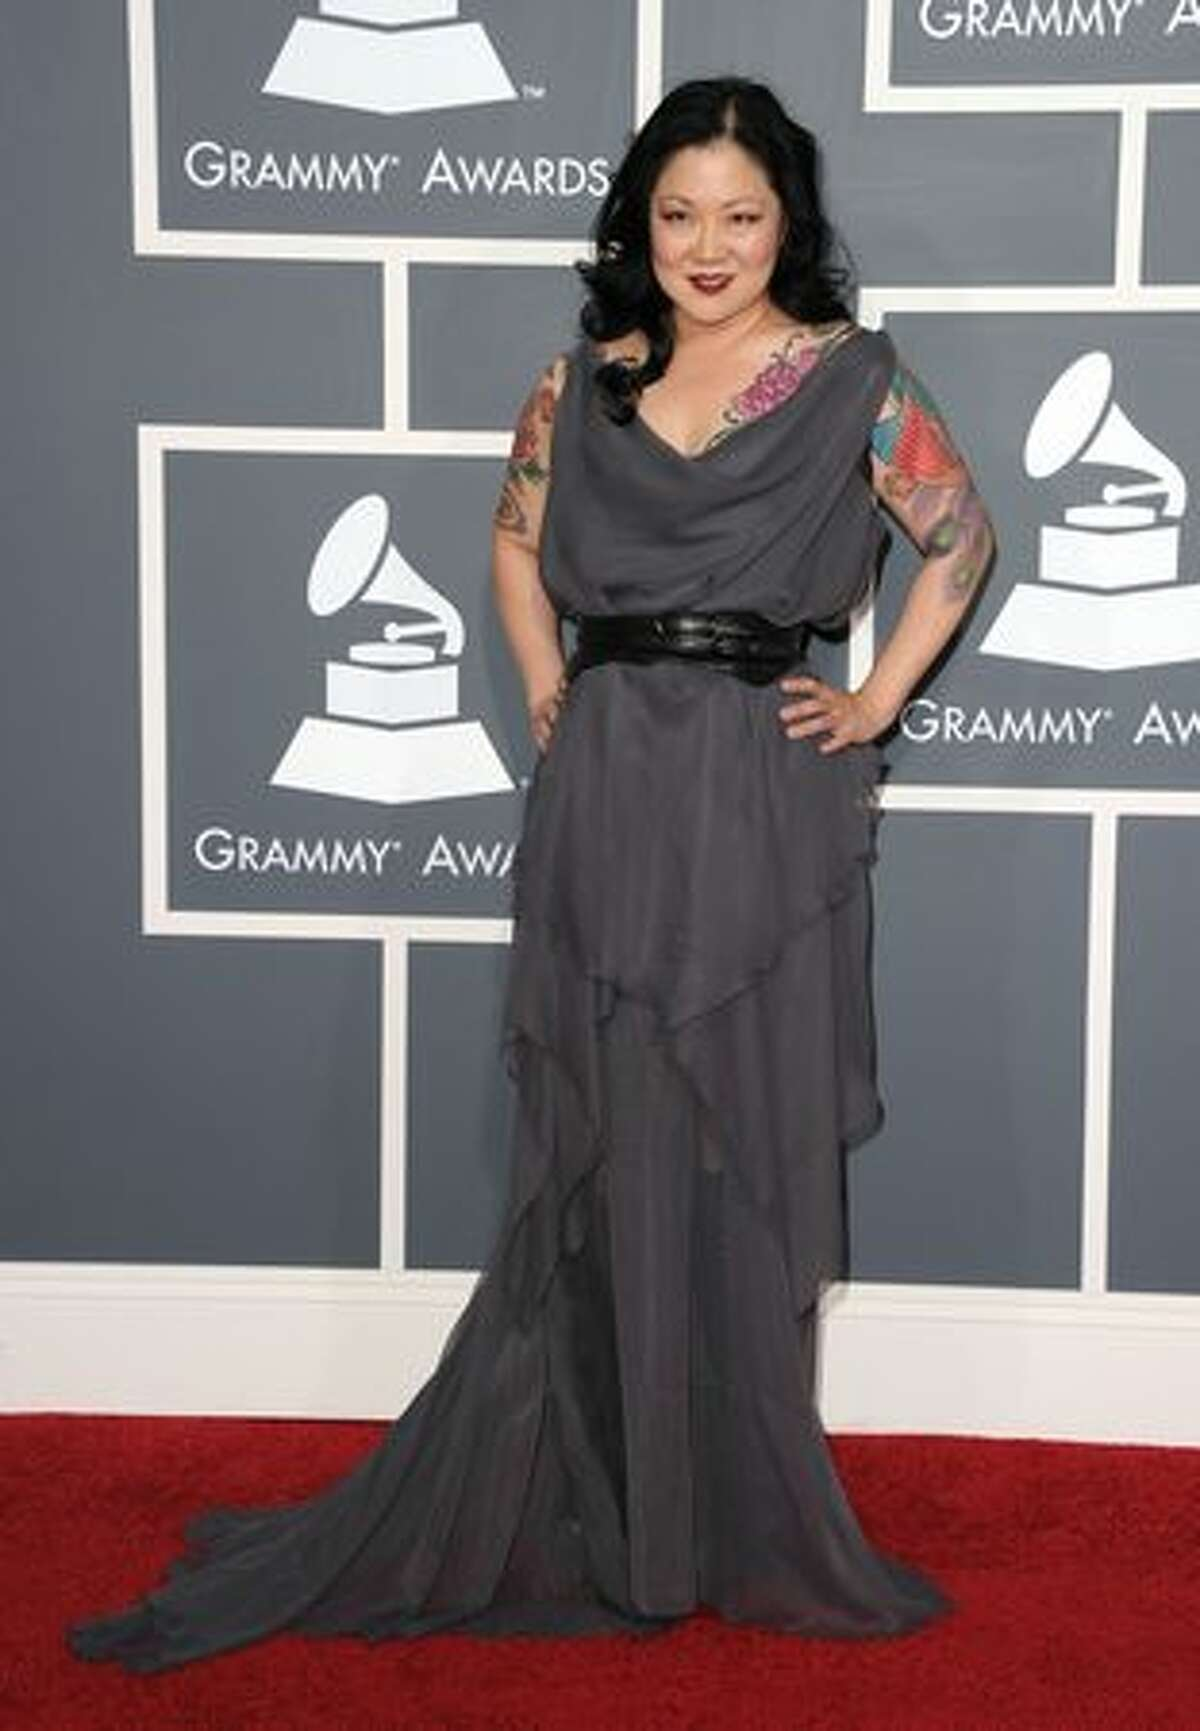 Comedian Margaret Cho is probably the last person we would have expected to see at the Grammys, much less on this best-dressed list. Plus, we don't like tattoos. But her choice of dress is beautifully flattering, especially considering her 5-foot-5 frame, and her colorful tats actually enhance the monochromatic gown. BTW, that's a great belt.